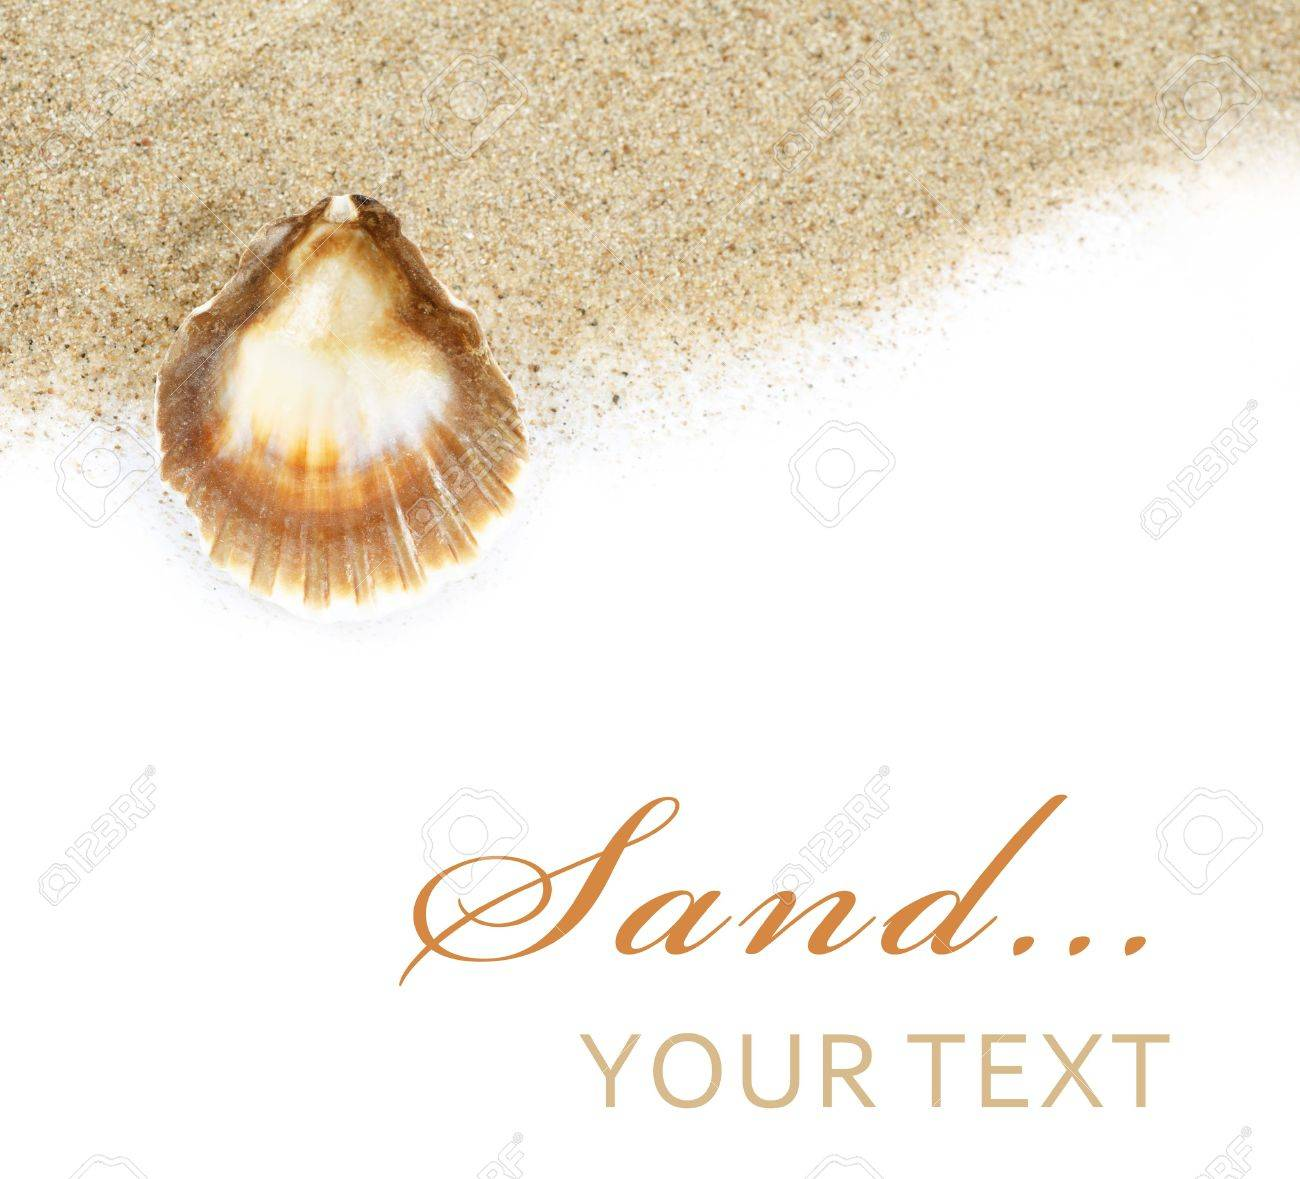 The sea shell isolated on white background Stock Photo - 11547782